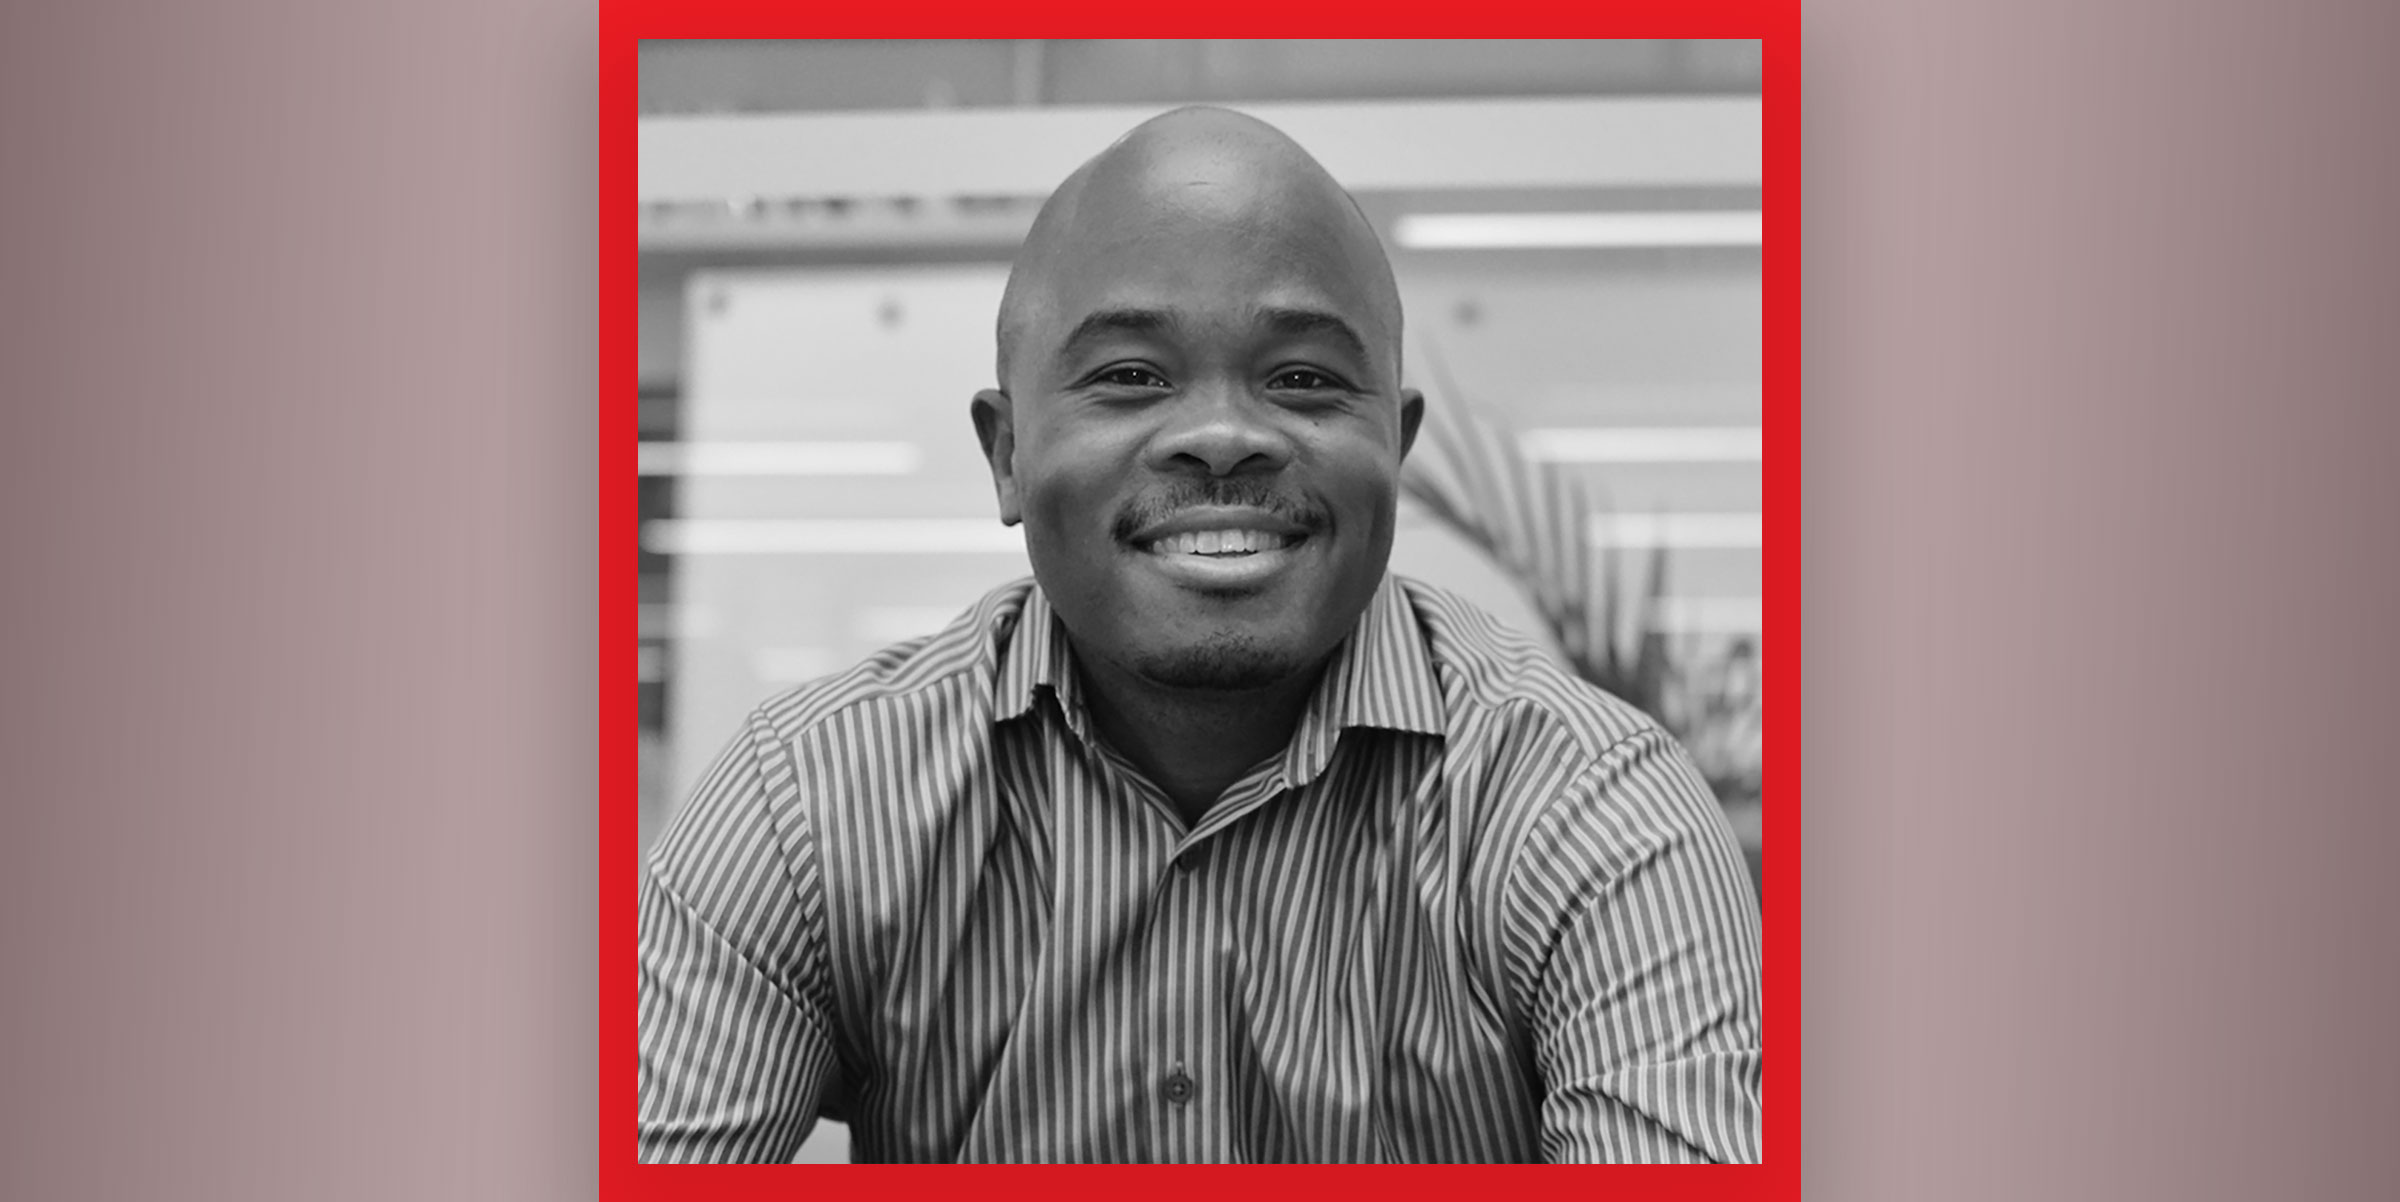 Fred Swaniker, the CEO and founder of the African Leadership Group, talked about his hope that young entrepreneurs could help the continent of Africa emerge stronger from the COVID-19 pandemic at the TIME100 Talks on Tuesday, Aug. 18, 2020.